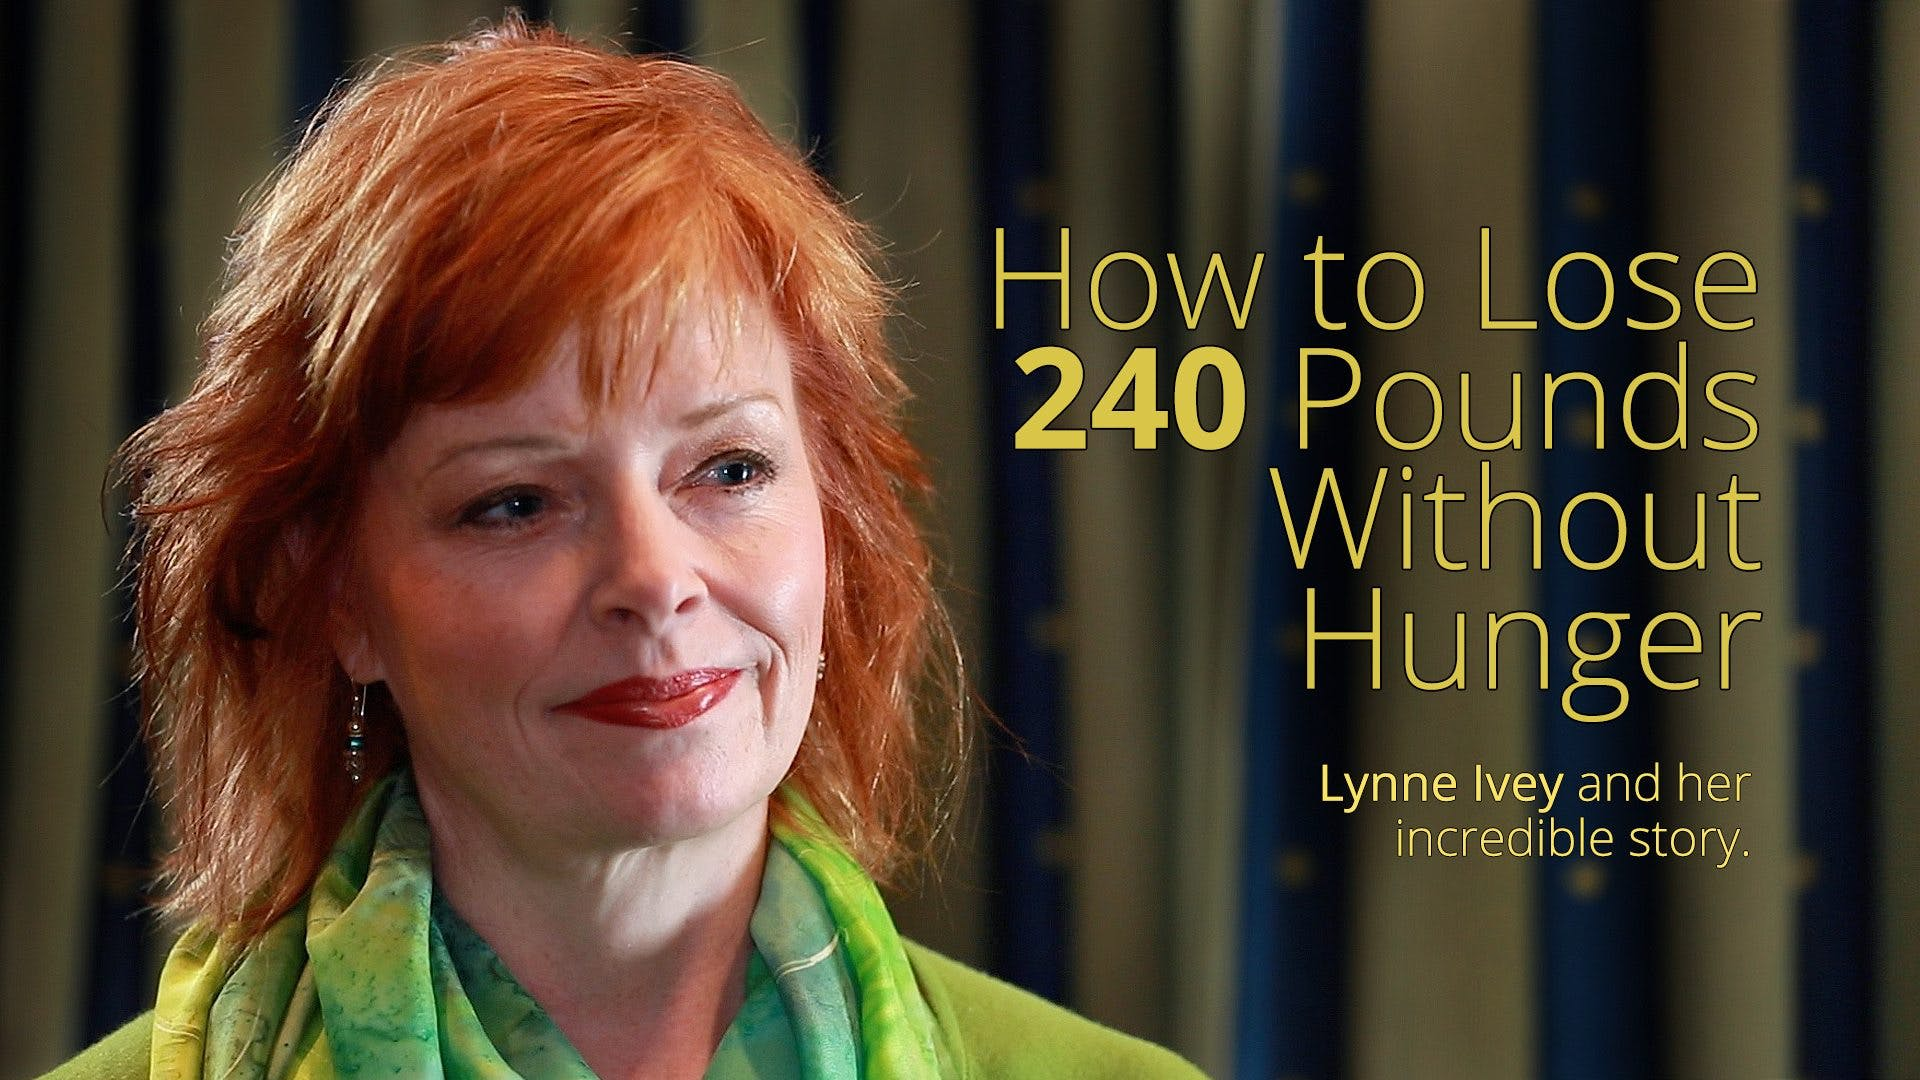 How to lose 240 pounds without hunger